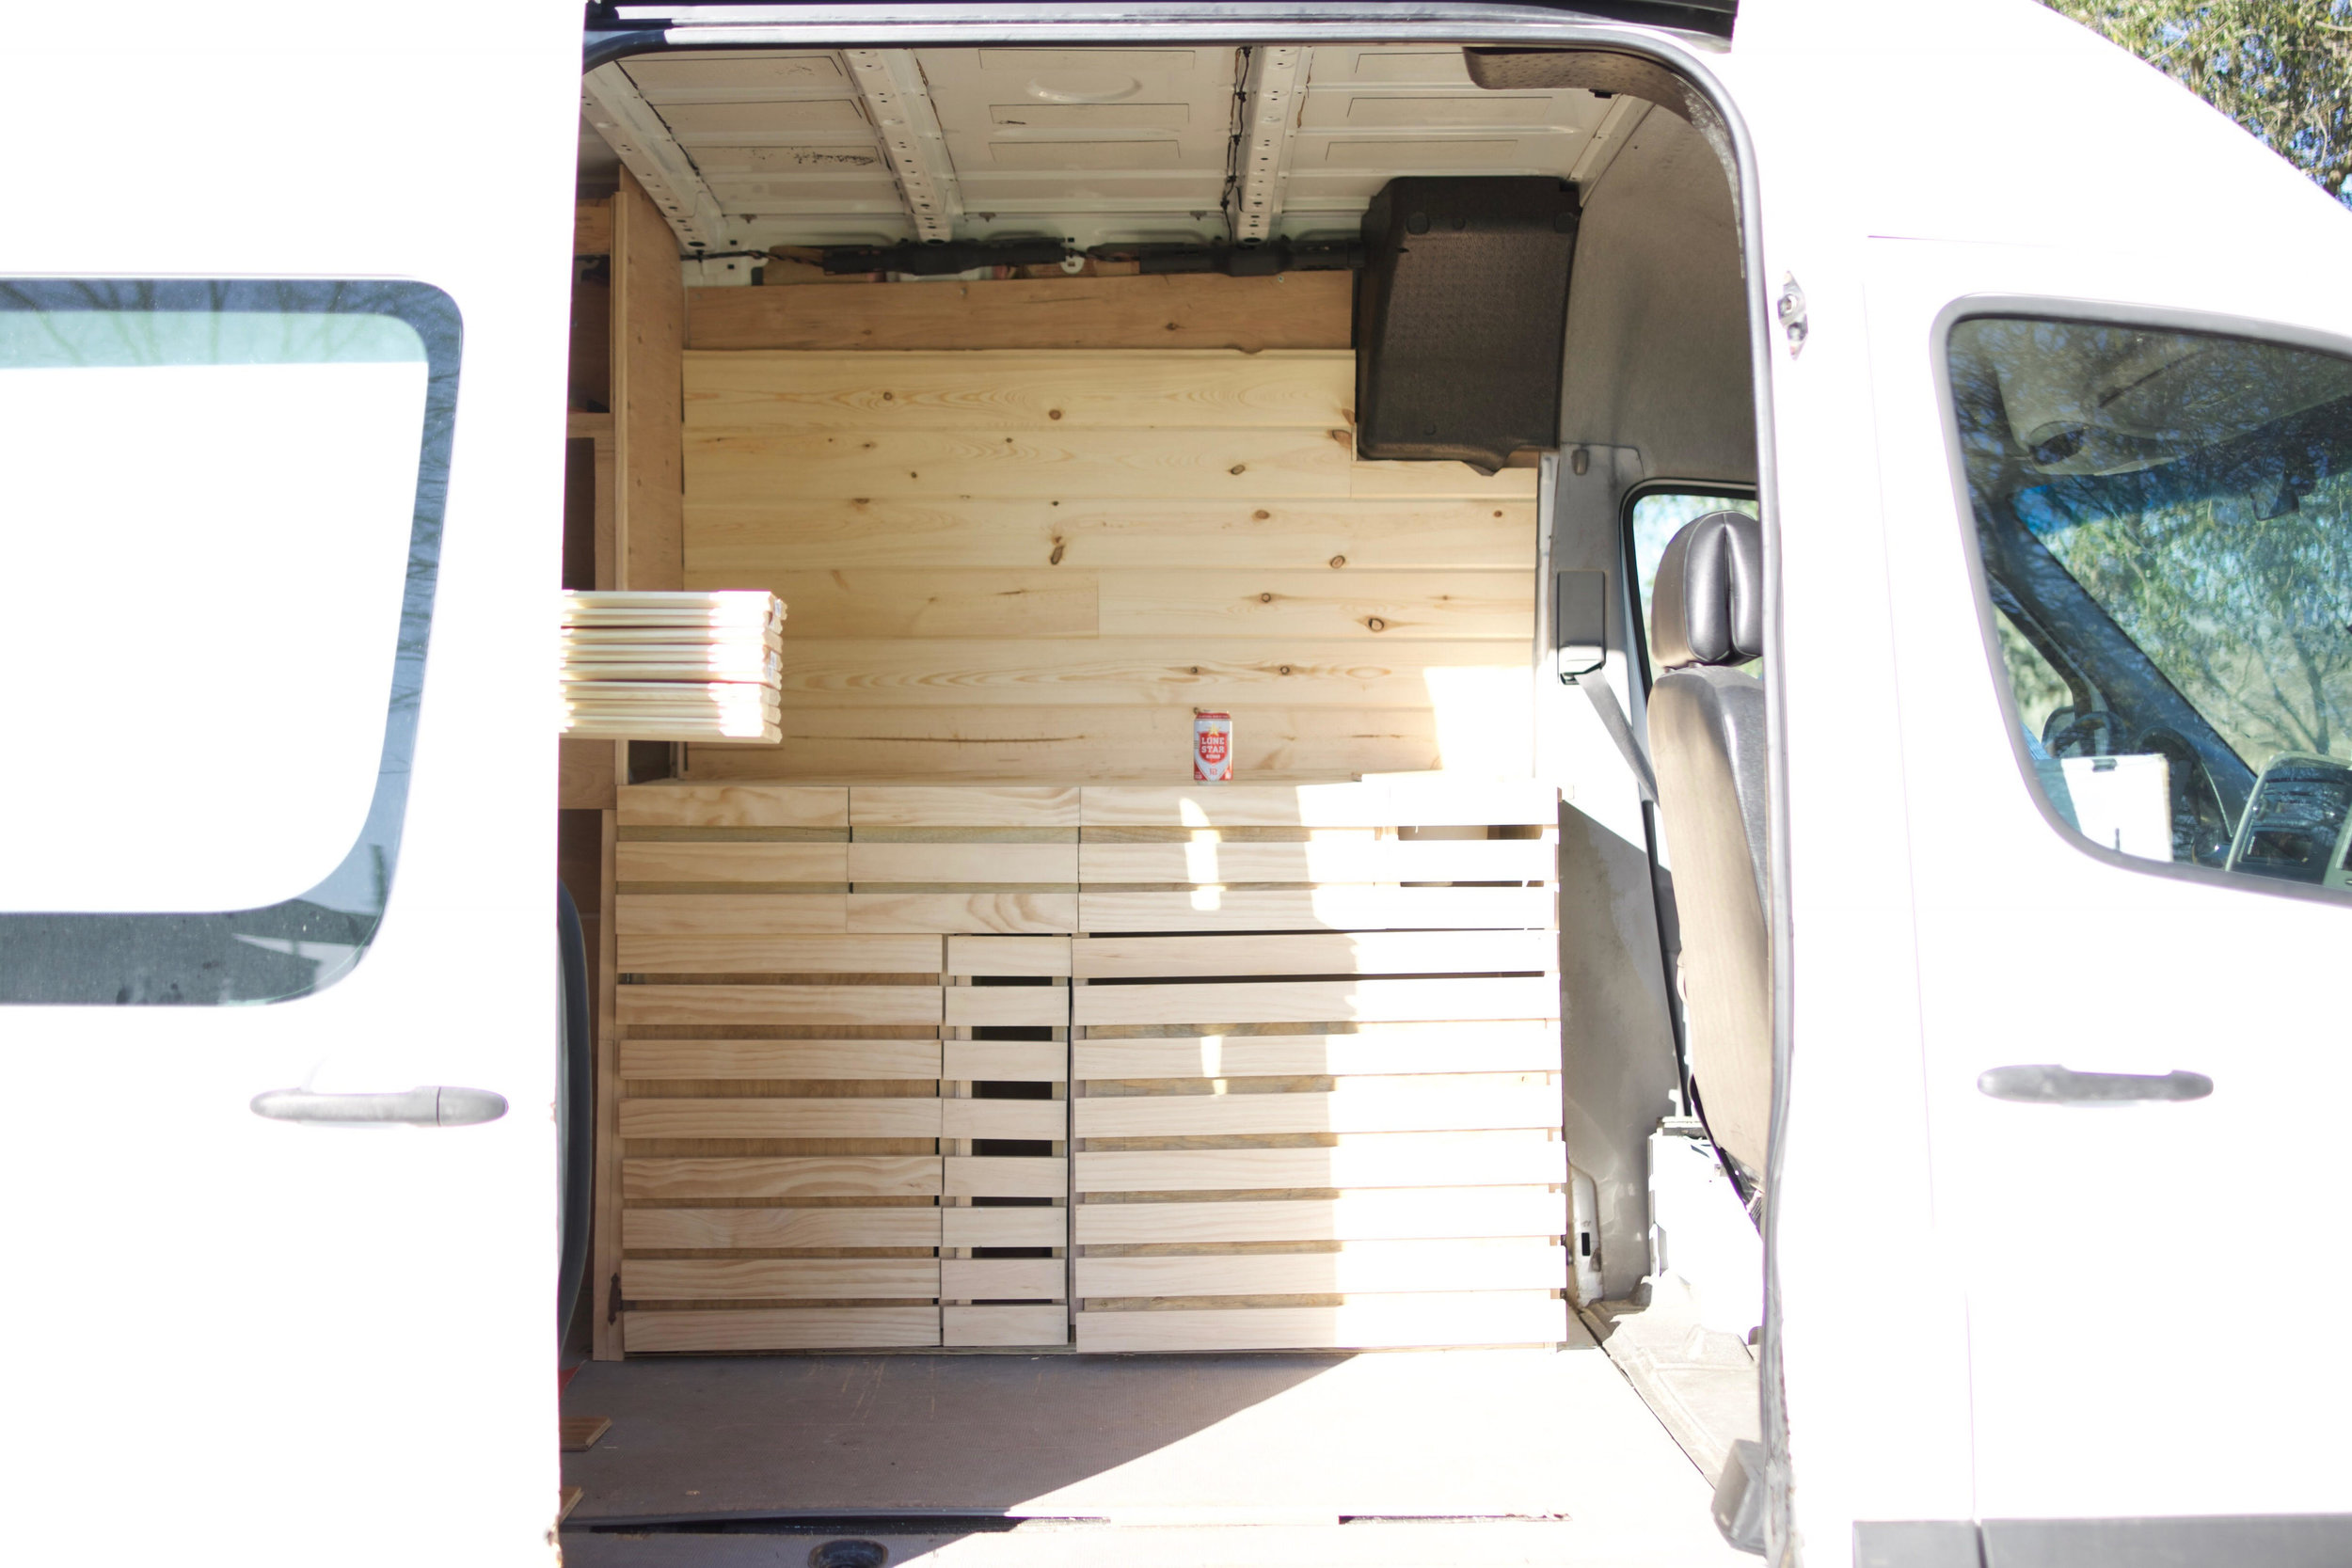 A faster house. - Working with Chewy Design Co. will ensure your van is built ready for anything, not just cross-continental travel but also as a long term home. Your van will be as unique as you are and feel like home. You will learn how to install everything from running water to a powerful, electric generator powered by the sun. We will work together to give the van your touch and prepare you for years of travel.